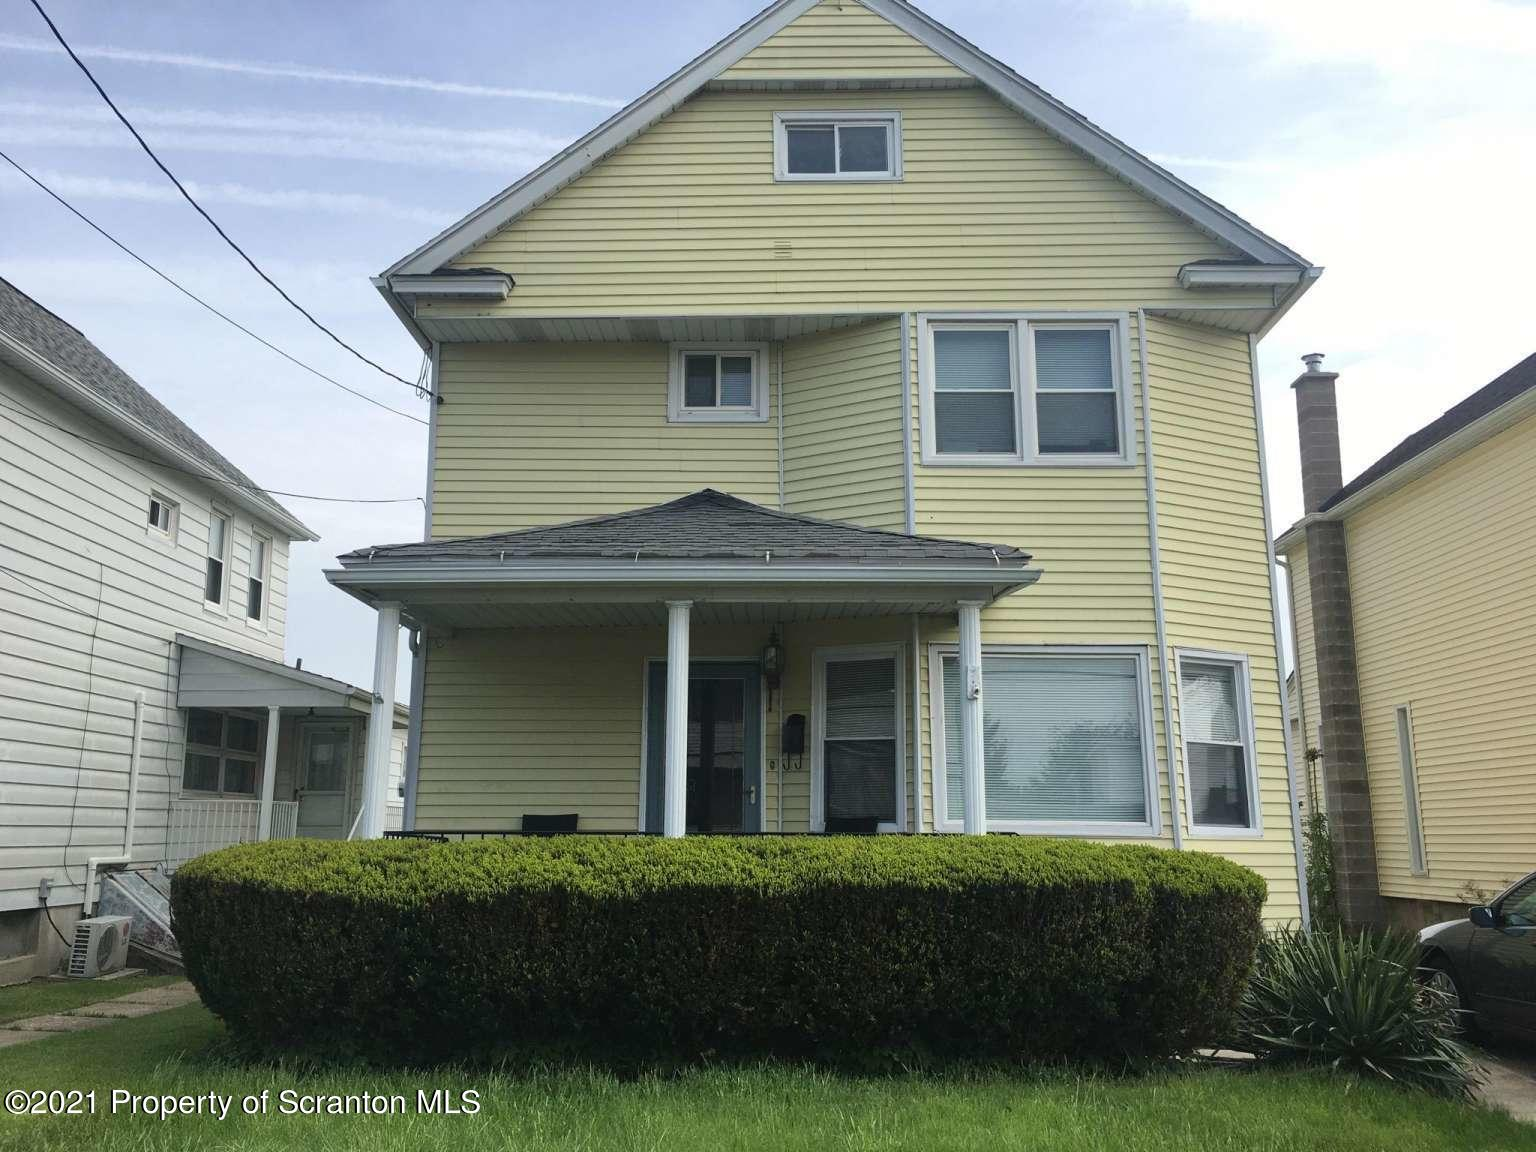 1150 Loomis Ave, Taylor, Pennsylvania 18517, 3 Bedrooms Bedrooms, 6 Rooms Rooms,2 BathroomsBathrooms,Single Family,For Sale,Loomis,21-1824